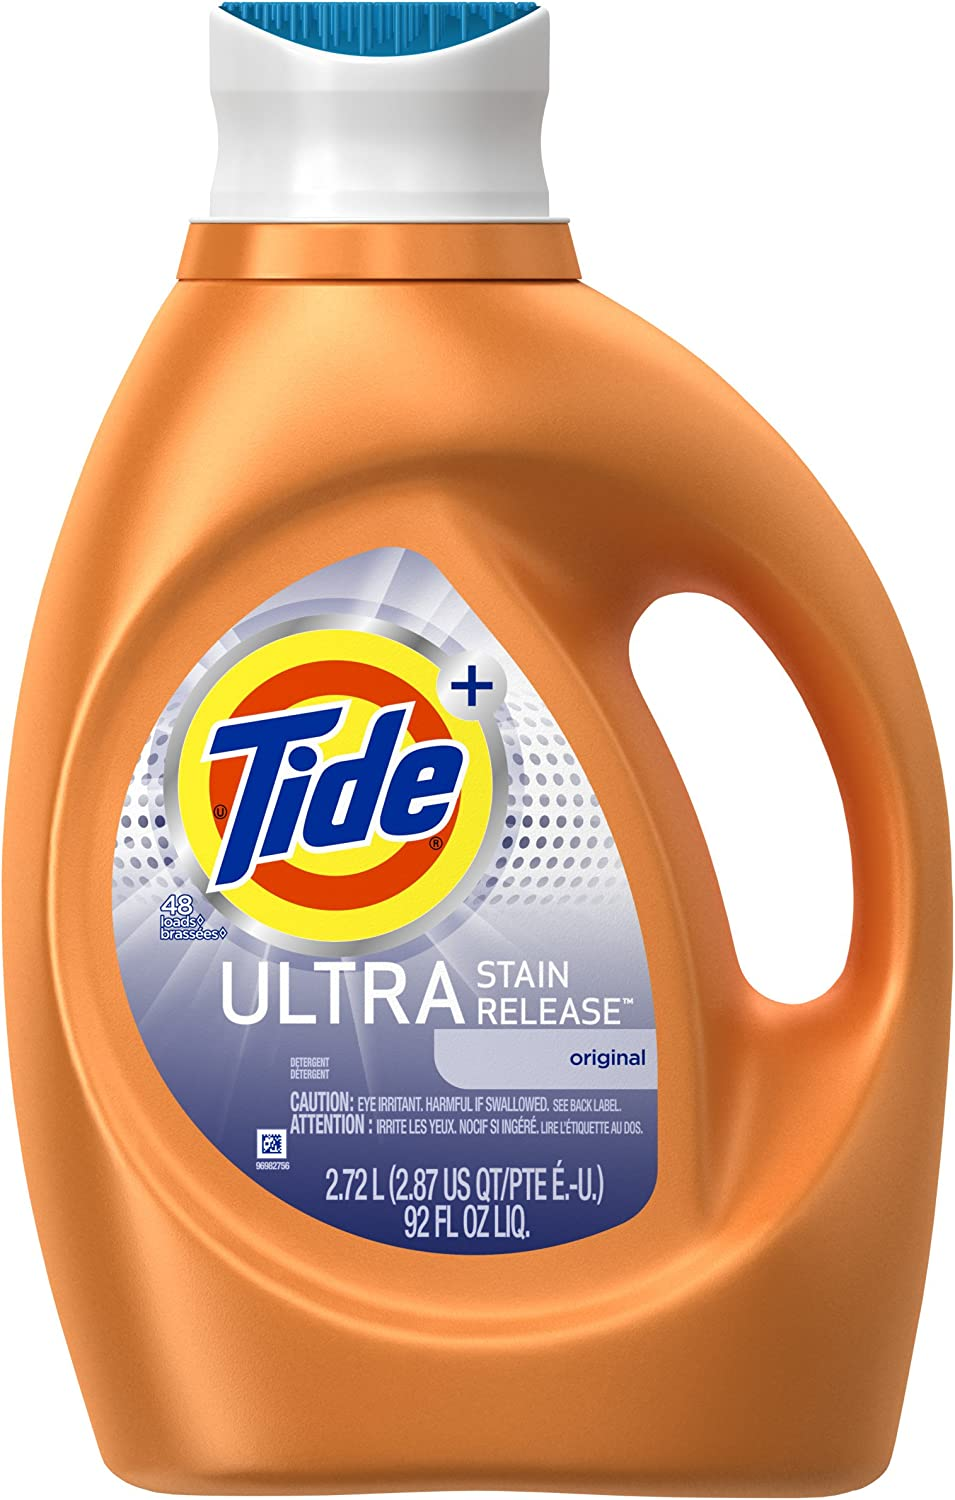 Tide Ultra Stain Release Liquid Laundry Detergent, Original - 92 oz